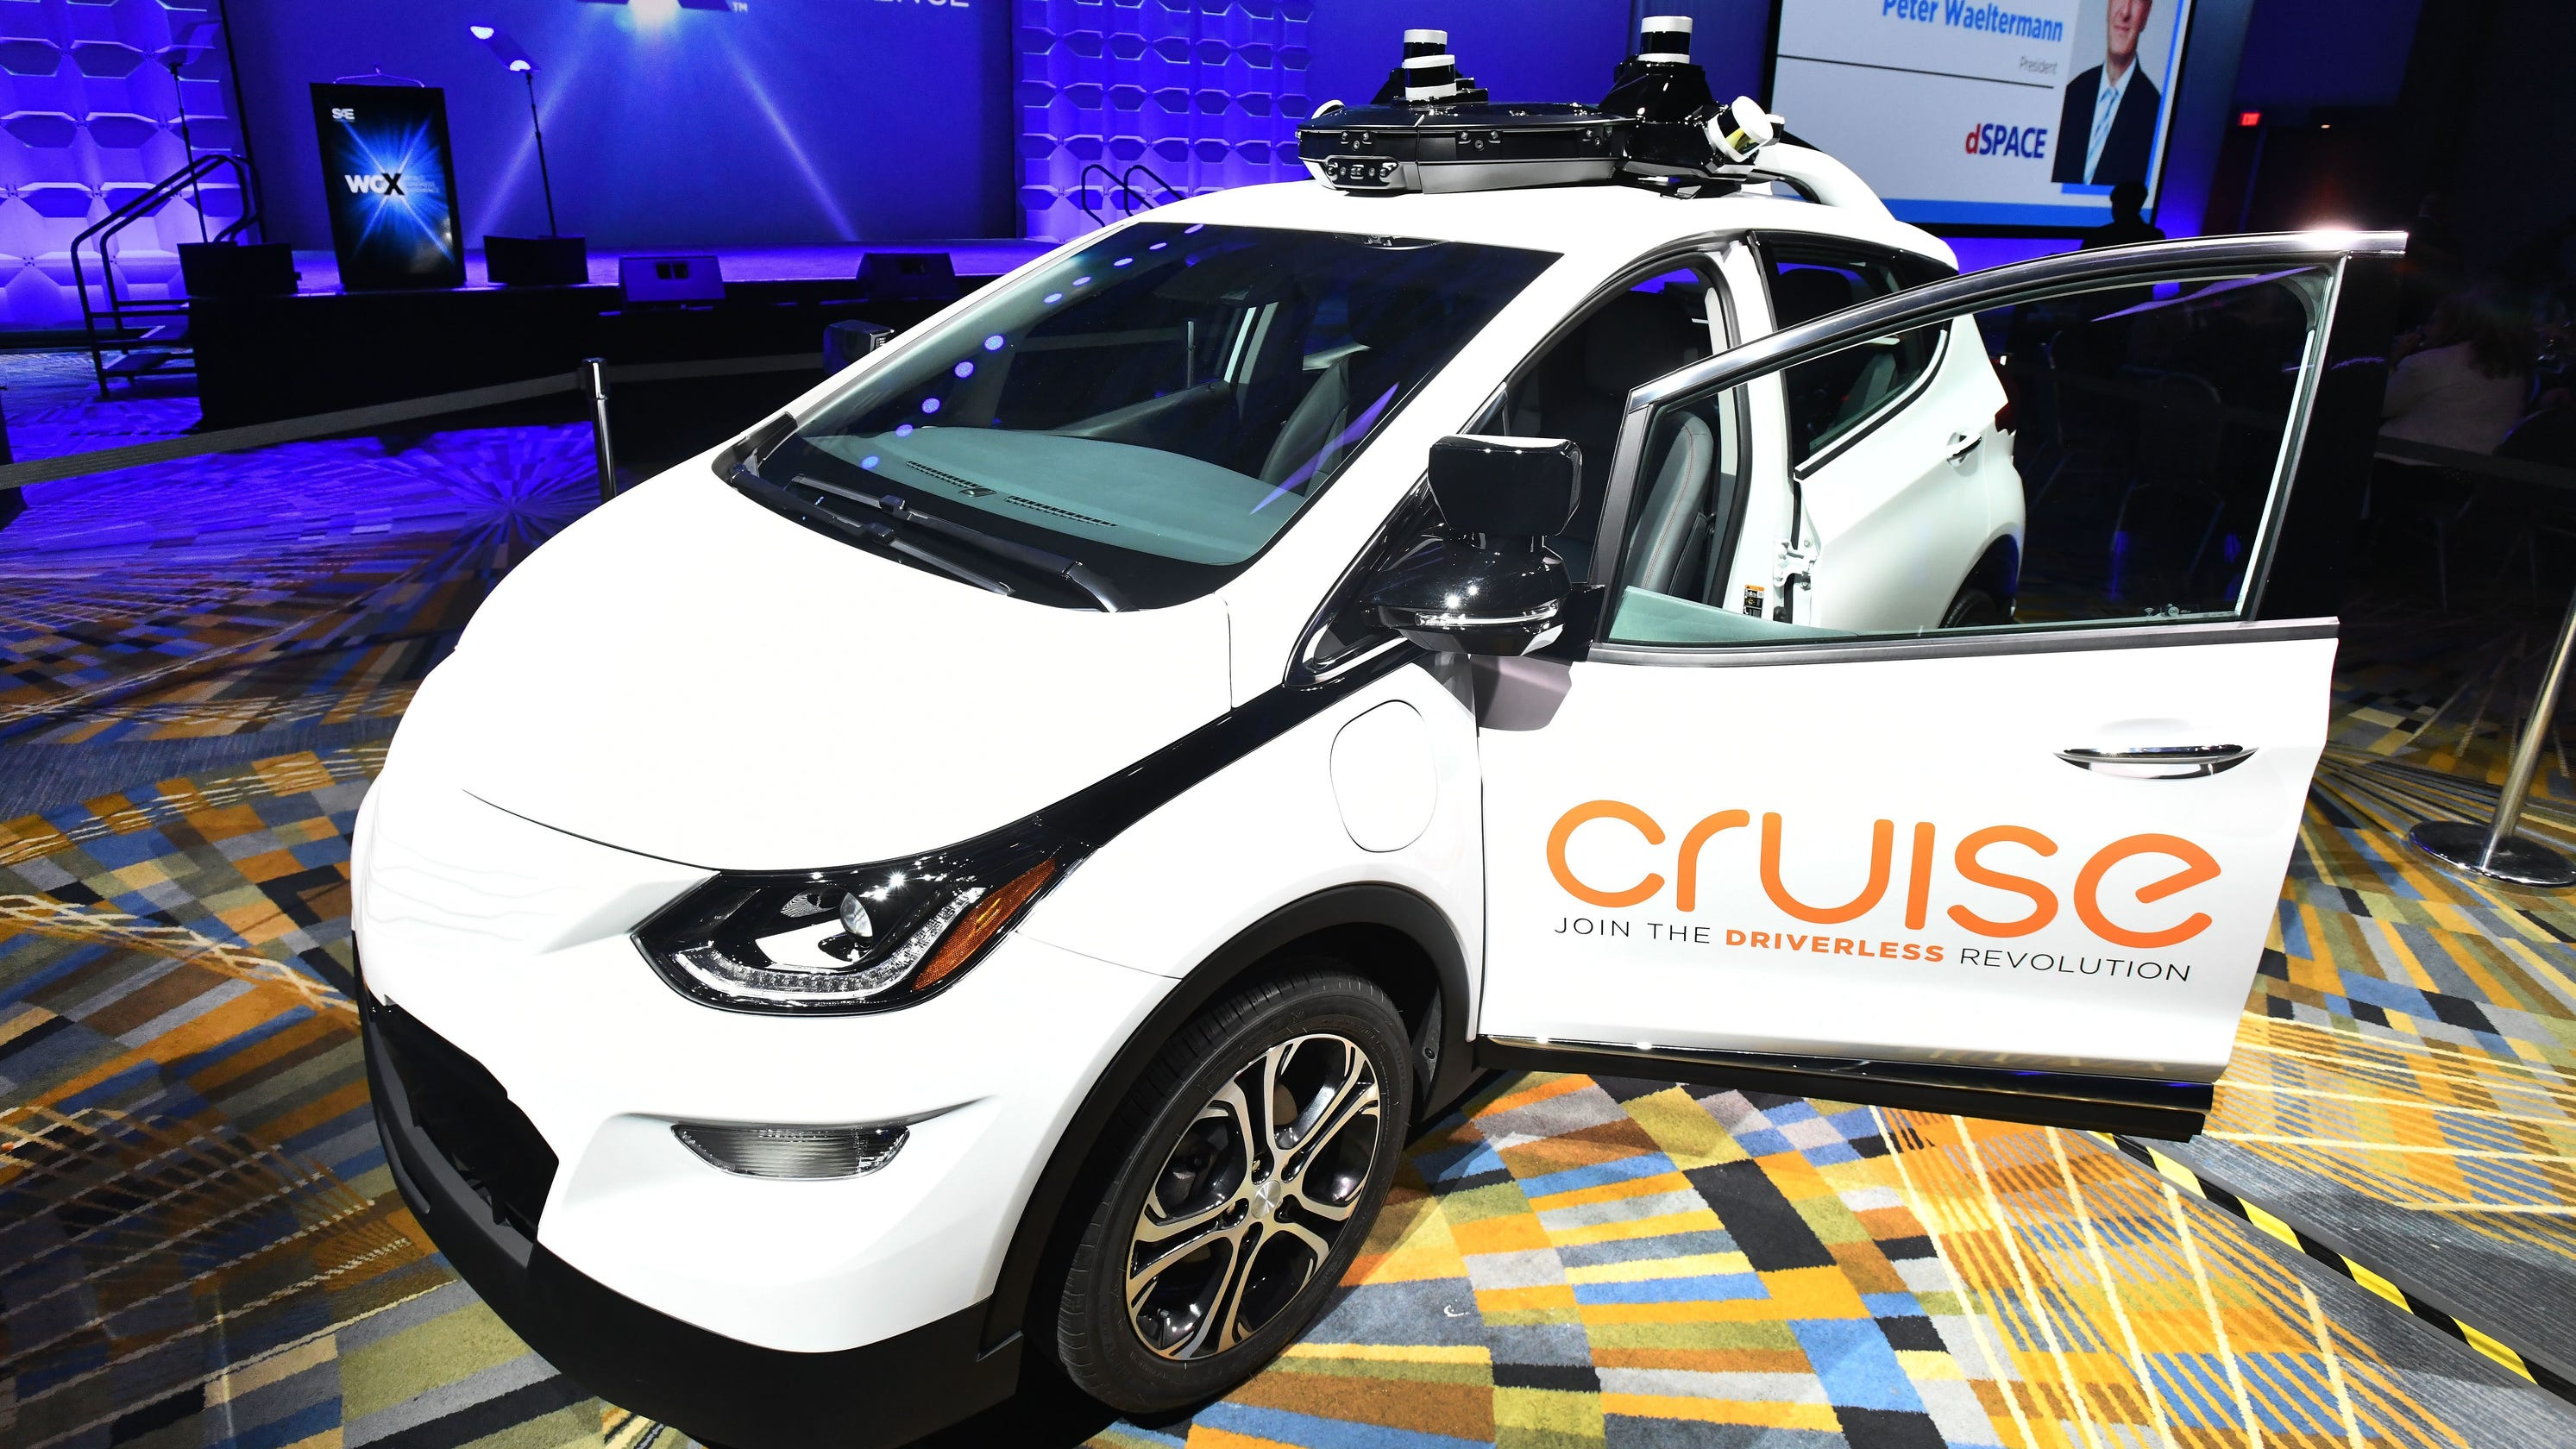 Robot cars drive forward without clear direction from Washington